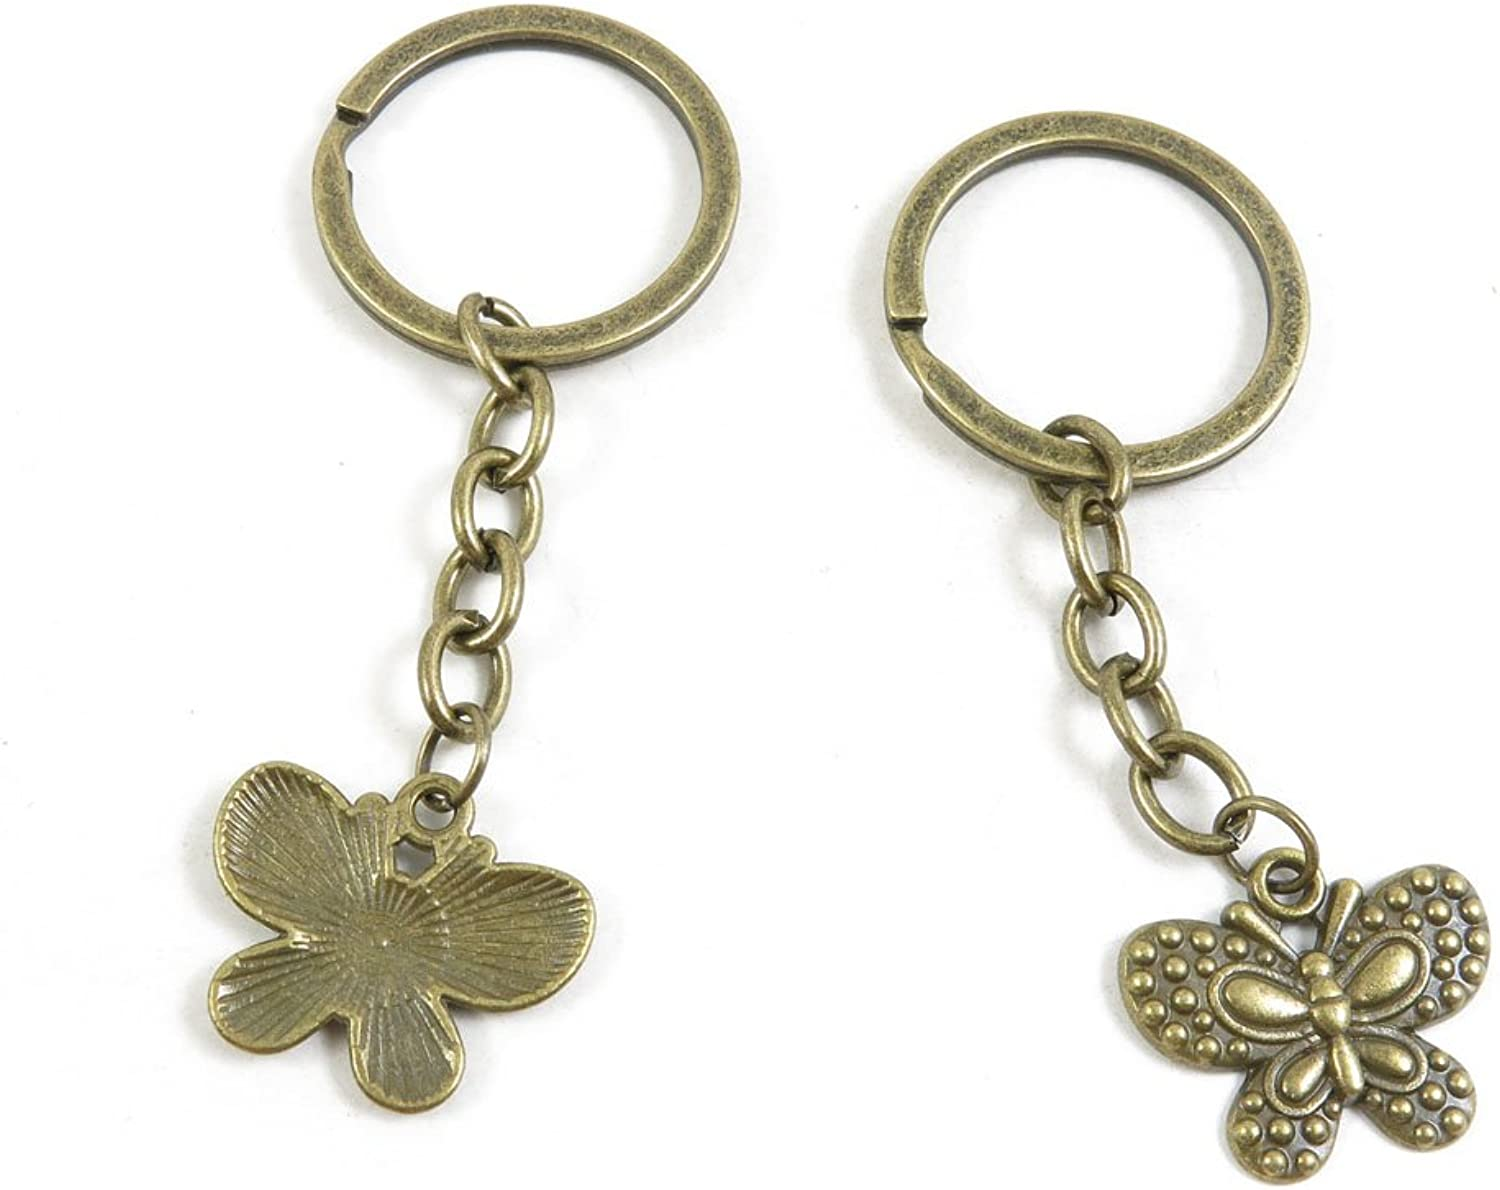 180 Pieces Fashion Jewelry Keyring Keychain Door Car Key Tag Ring Chain Supplier Supply Wholesale Bulk Lots Y7KK4 Butterfly